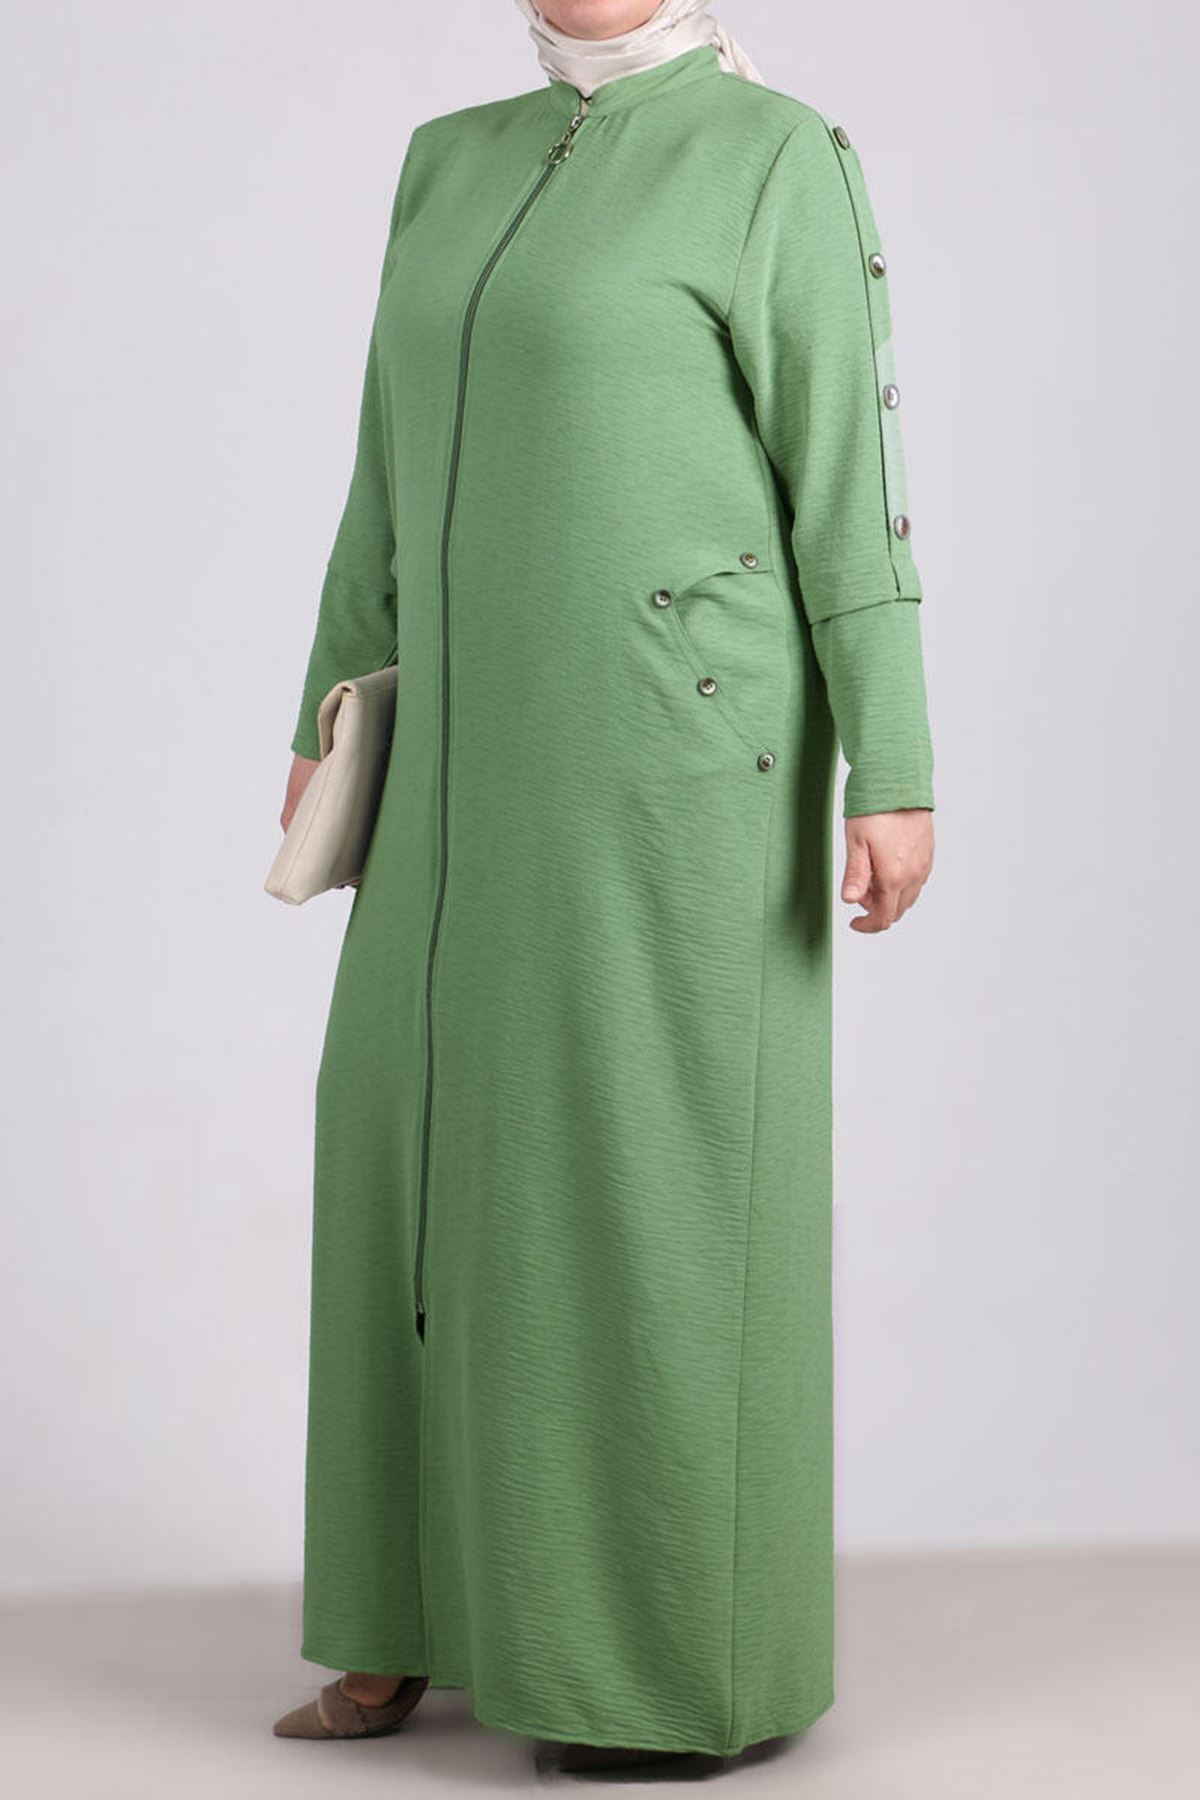 6036 Plus Size Button Detailed Topcoat- Naphtha Green